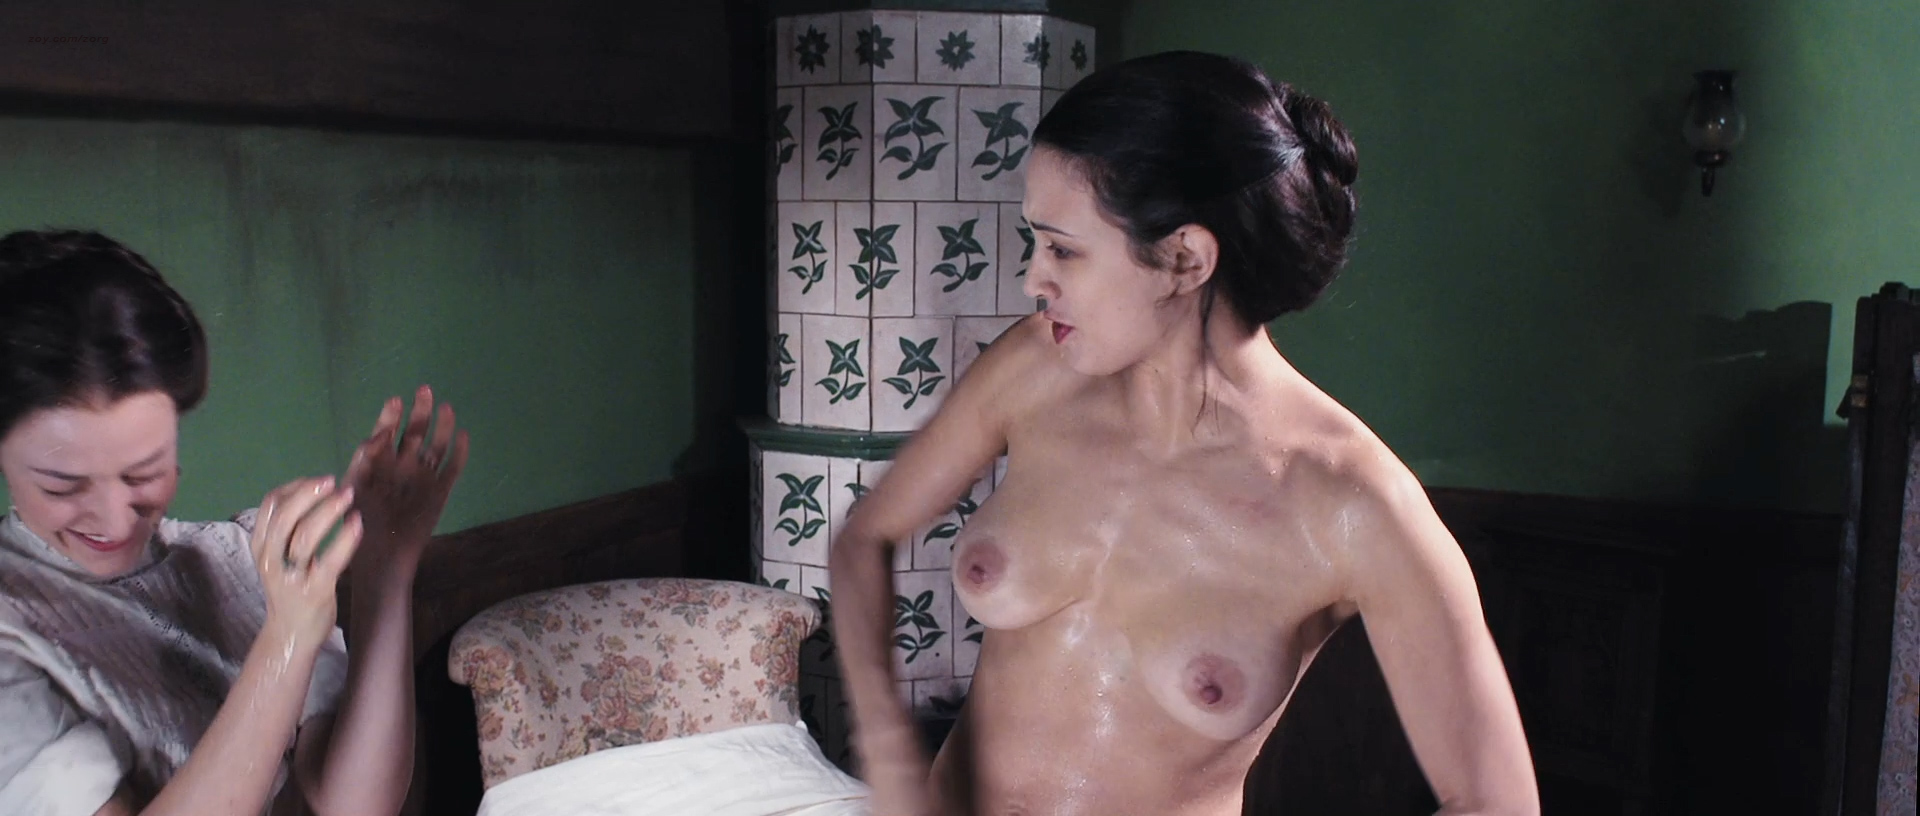 image Asia argento nude dracula 3d 2012